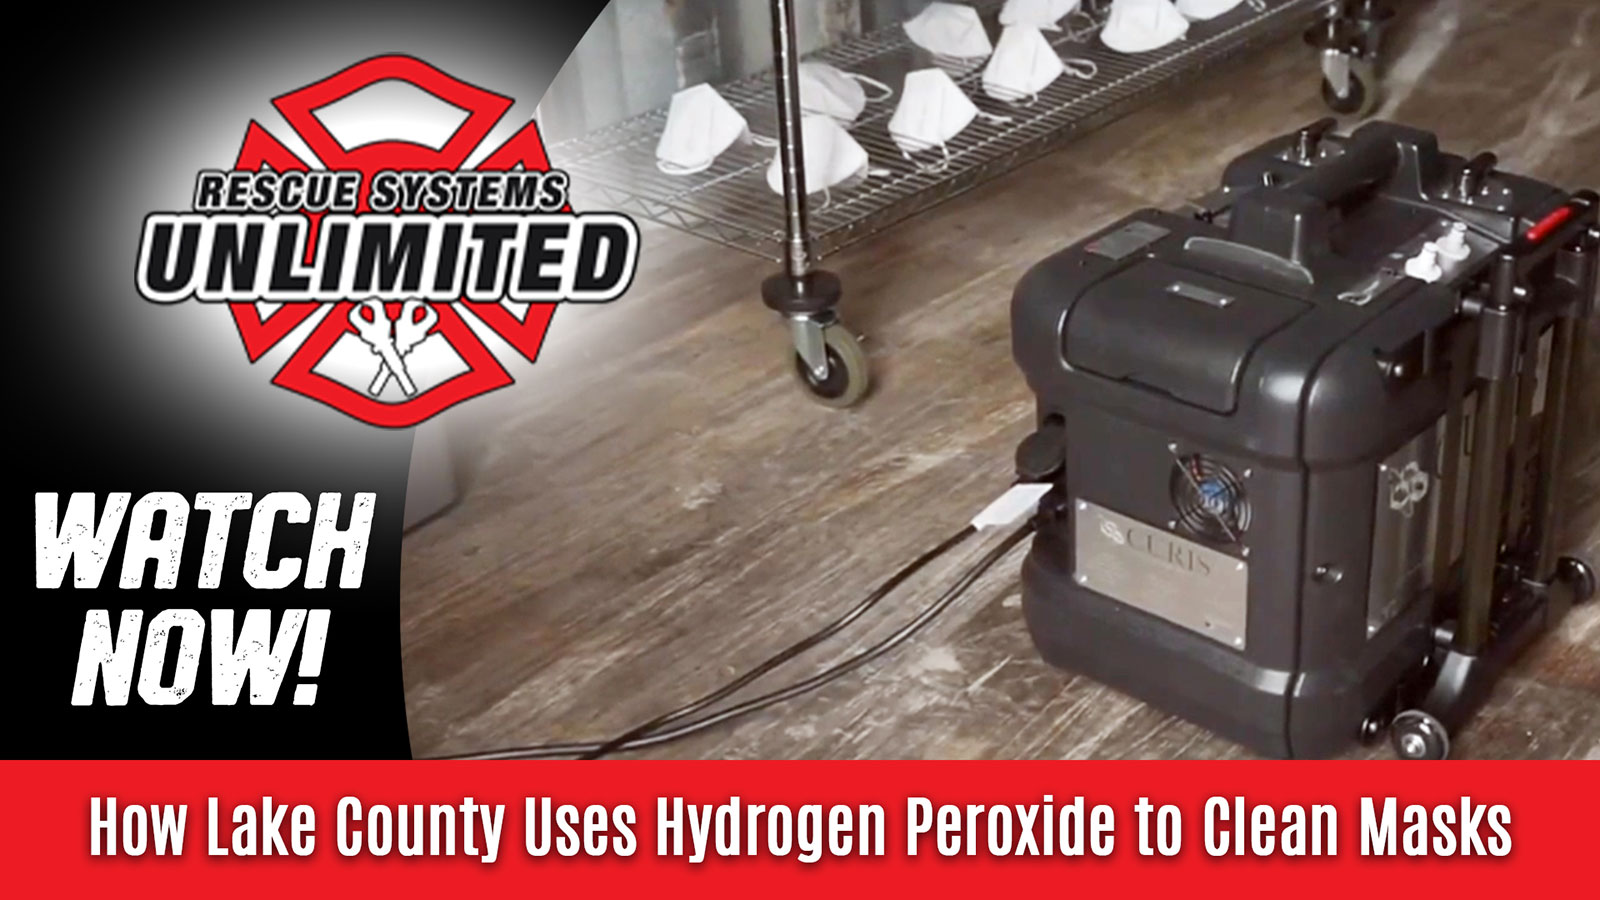 Watch how Lake County uses hydrogen peroxide to clean masks!